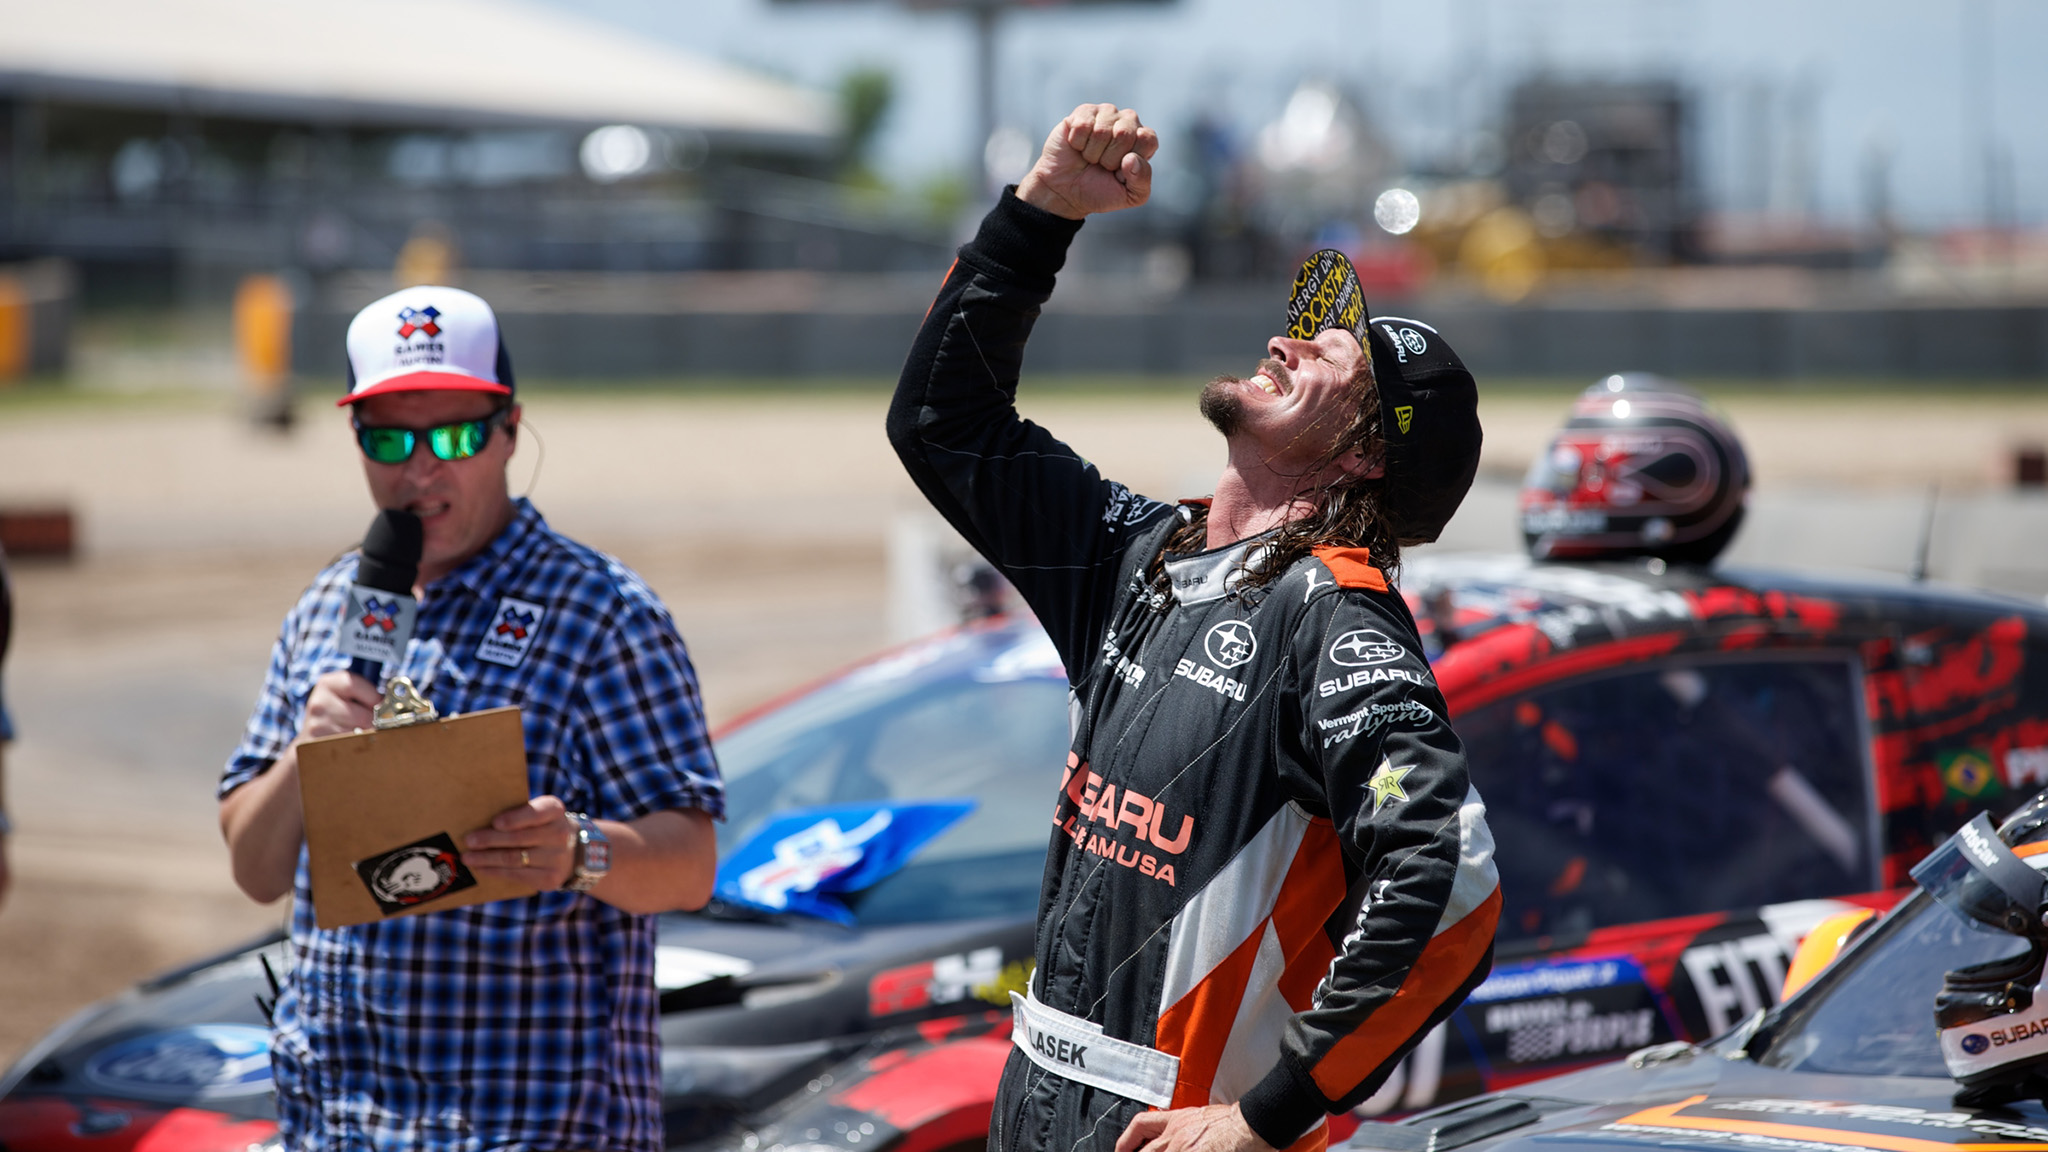 From Skateboard gold to RallyCross silver